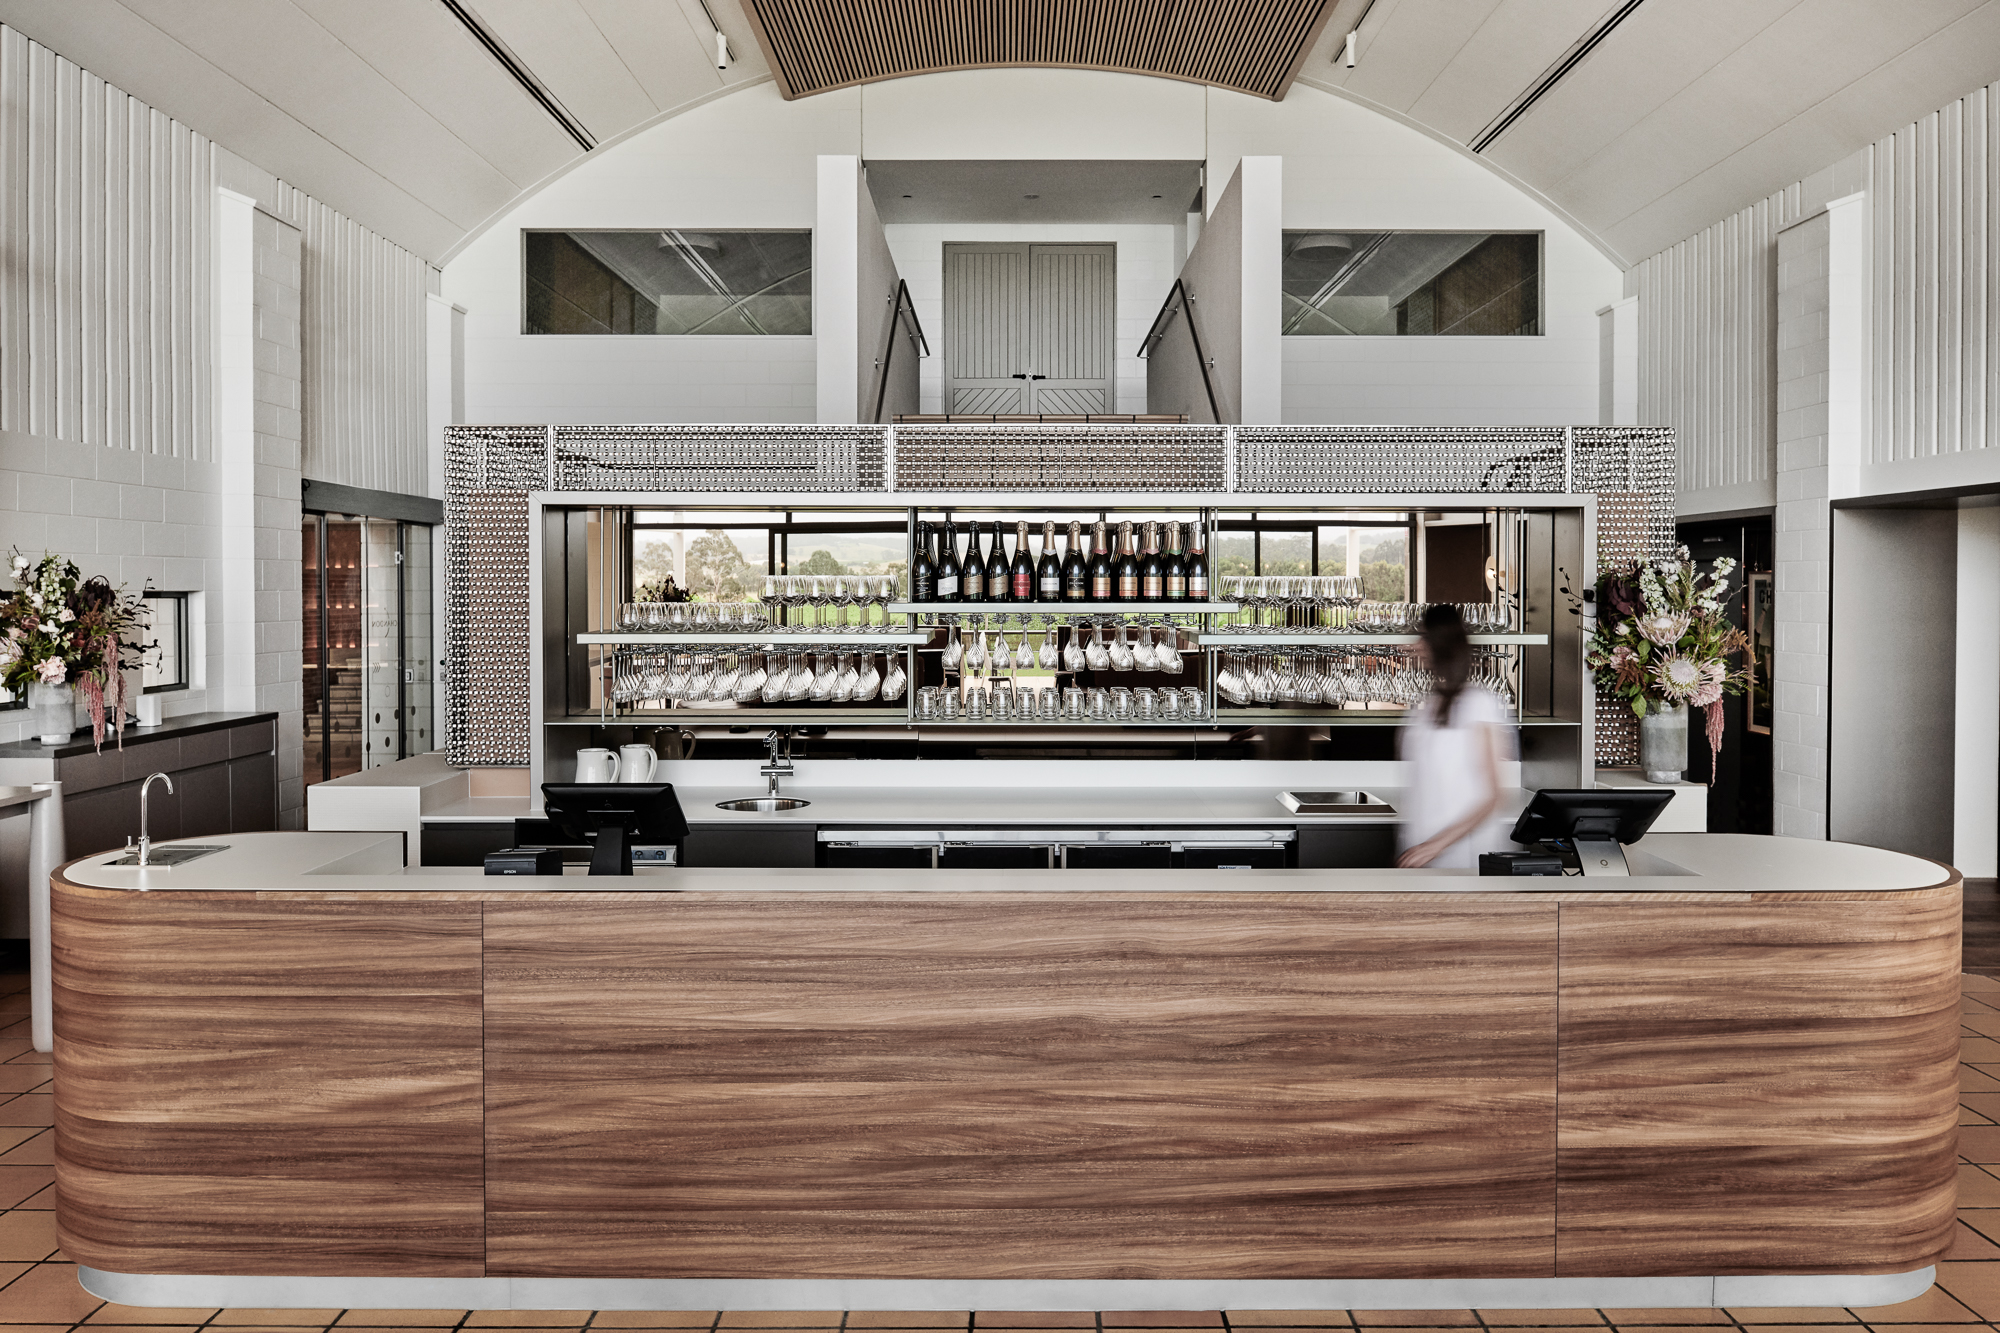 Gallery Of Chandon Australia By Foolscap Studio Local Australian Design And Interiors Yarra Valley, Vic Image 11